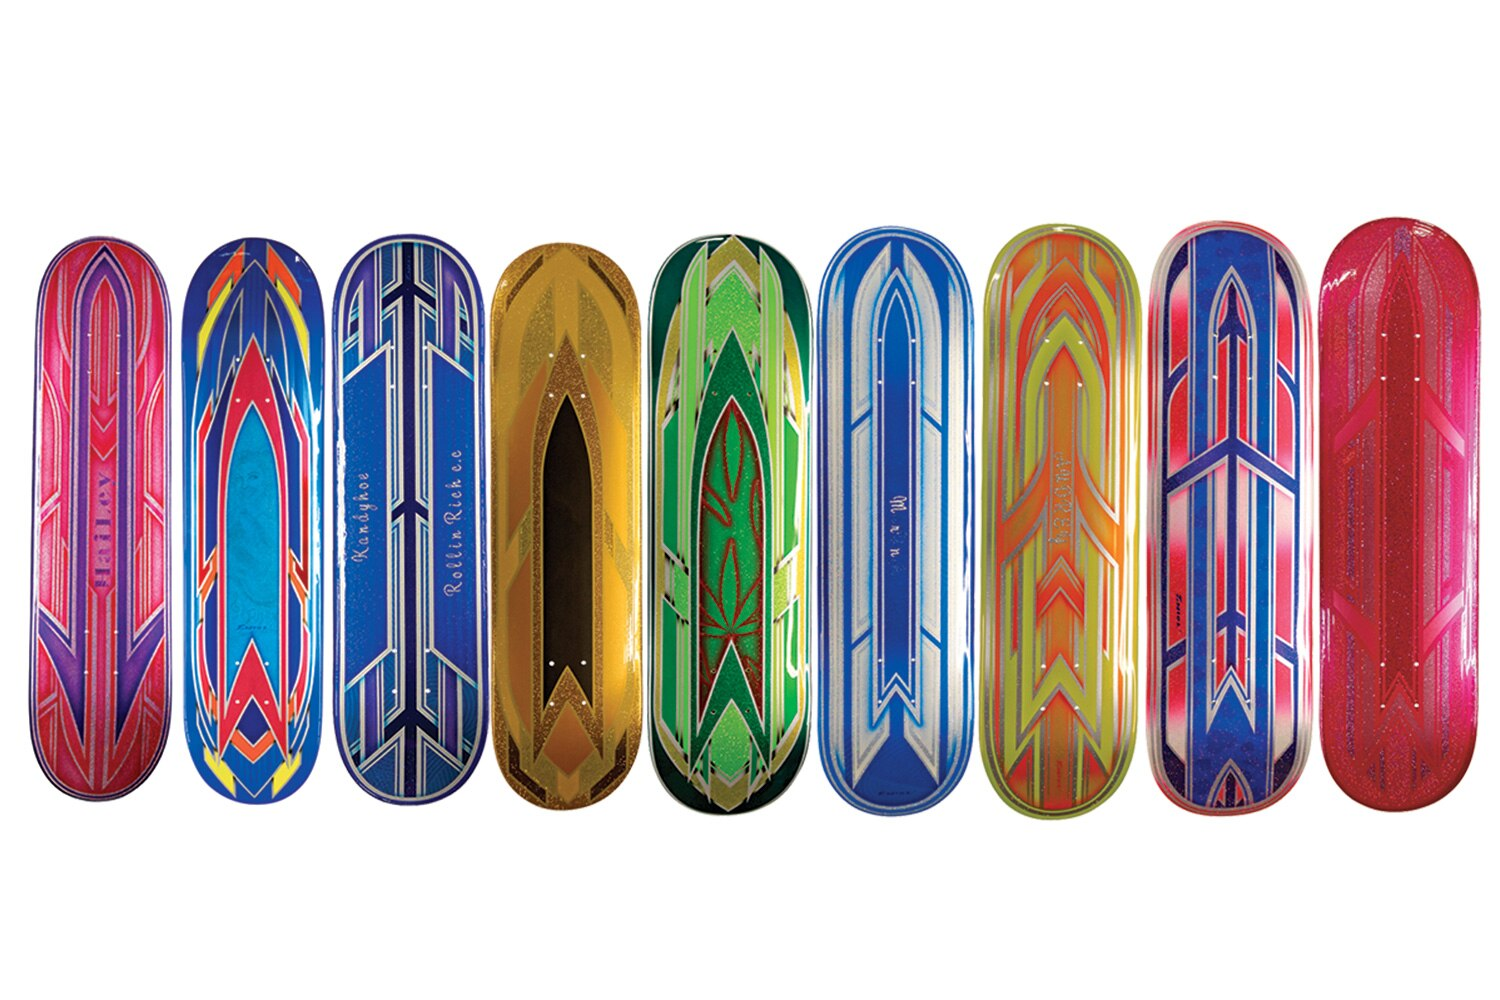 tintaz-custom-skateboard-decks-izzy-design-promo